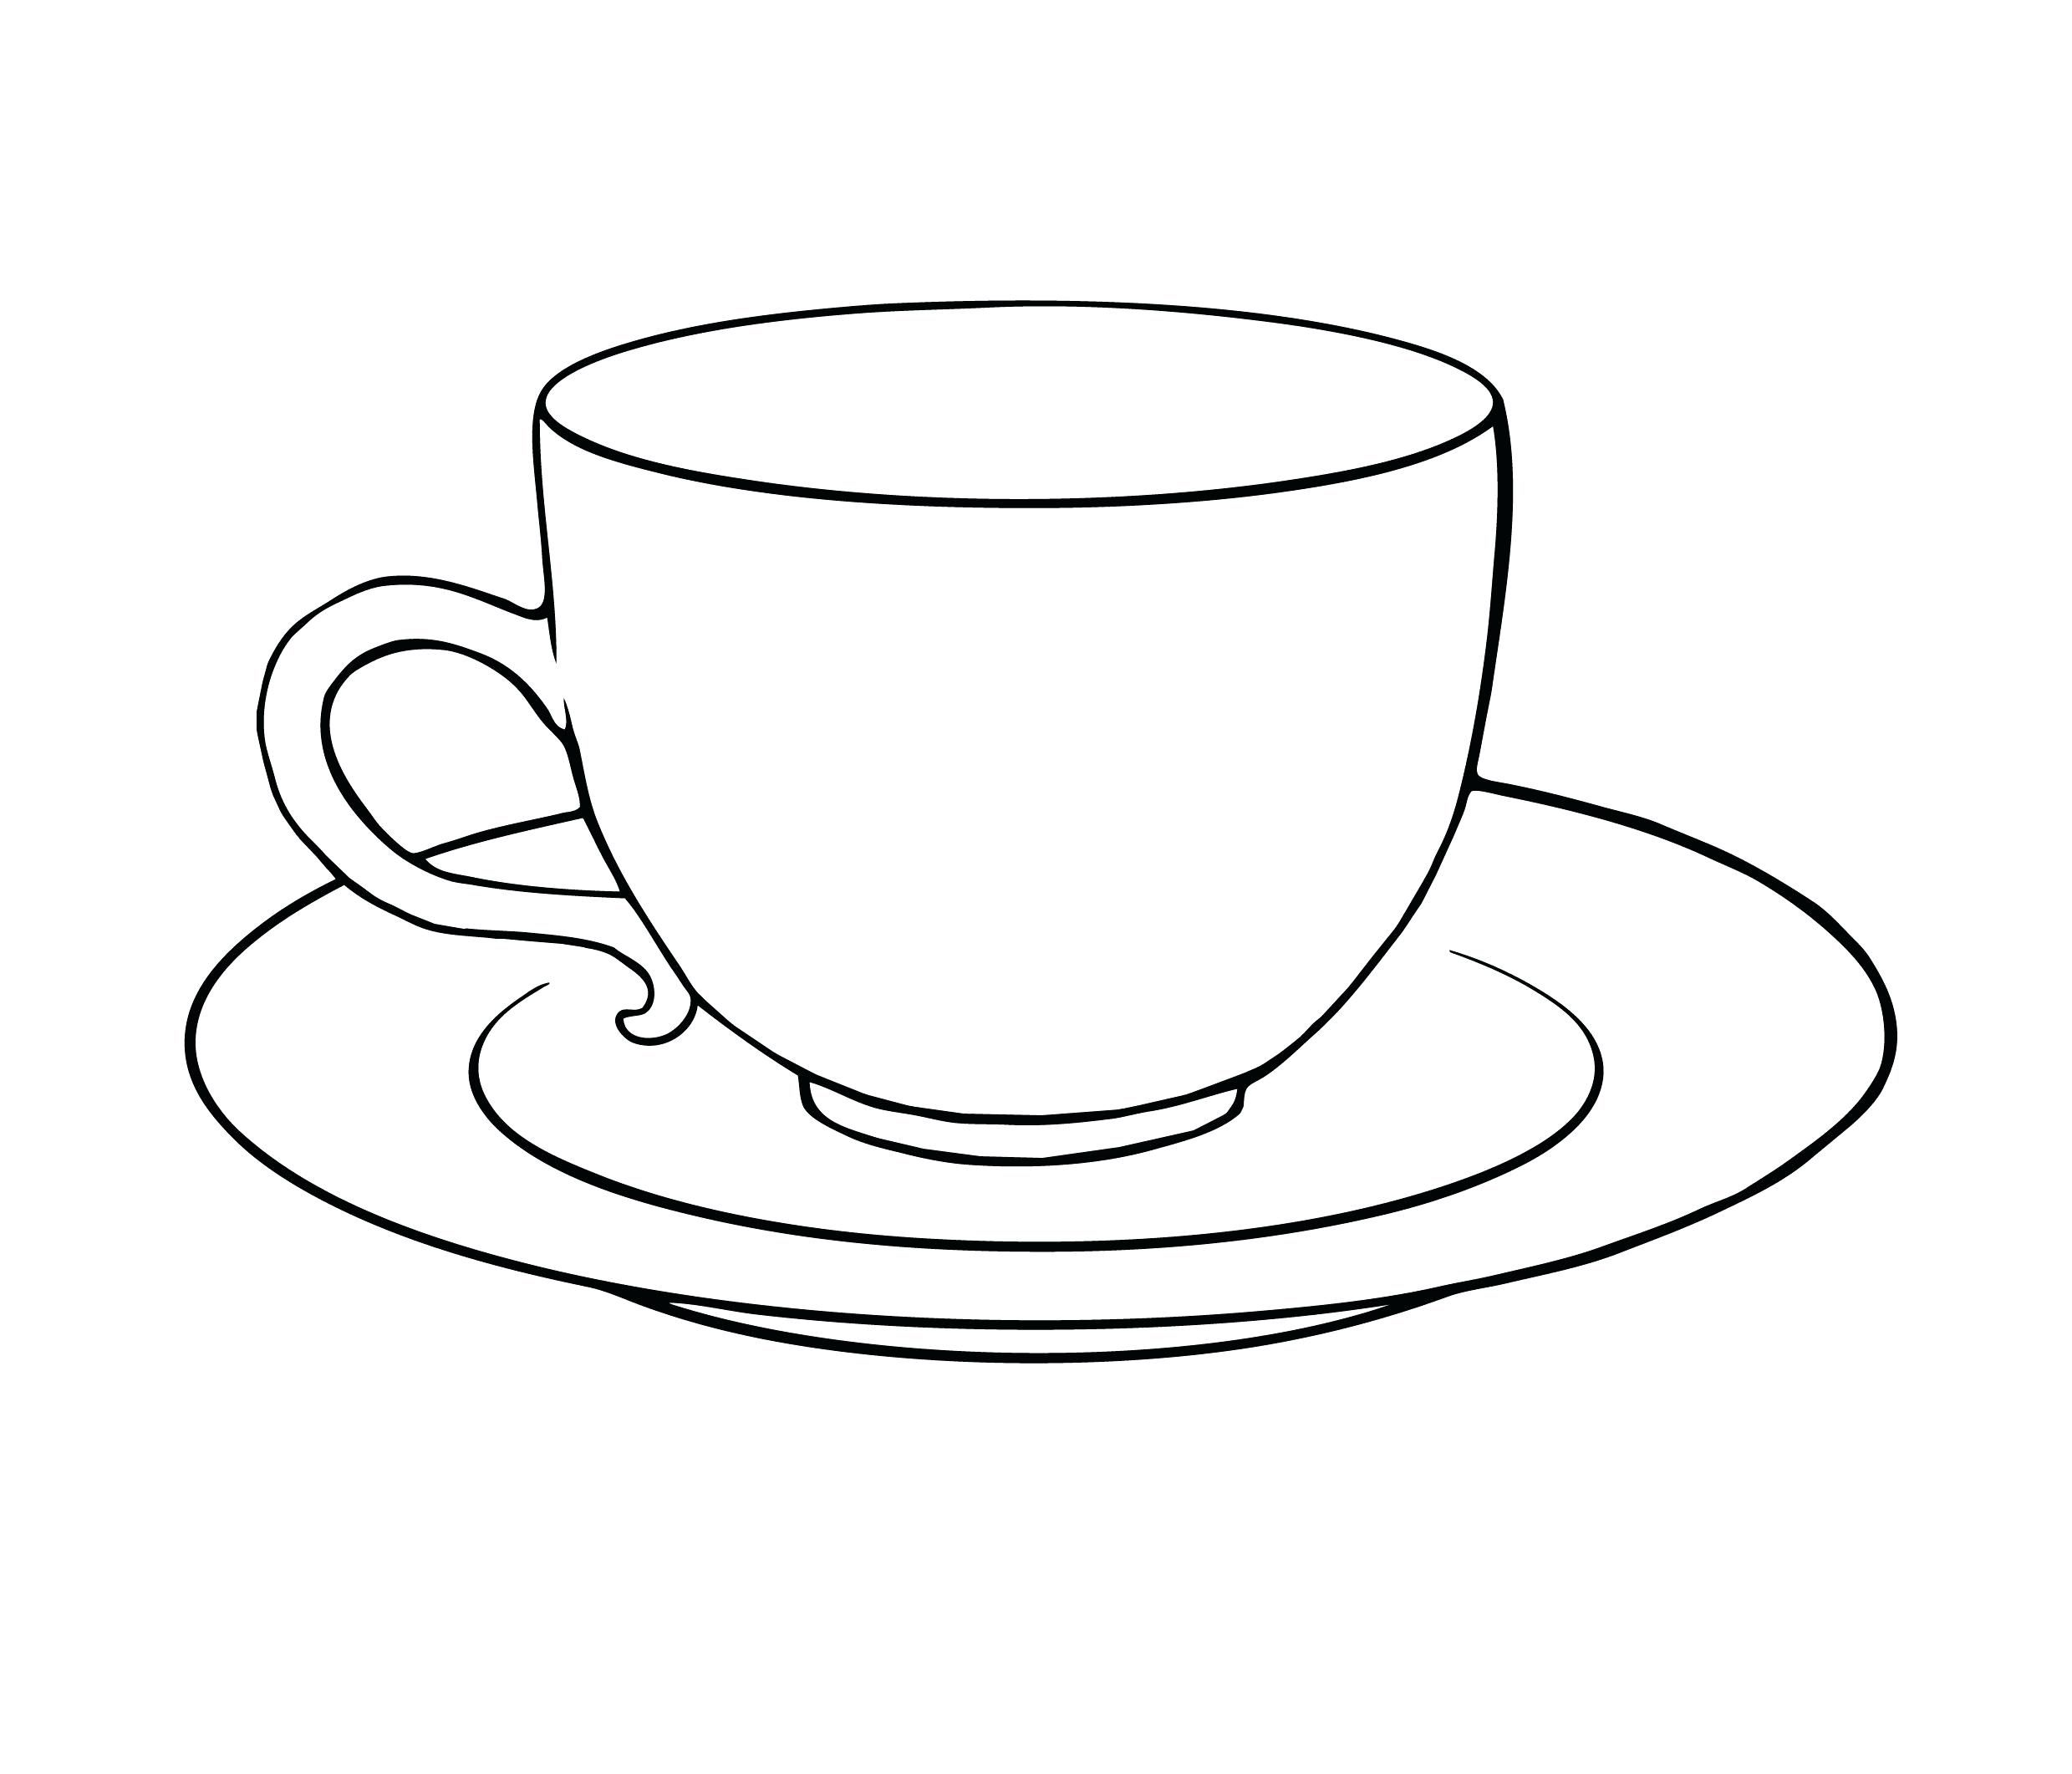 Coffee Mug Coloring Page 2019 Http Www Wallpaperartdesignhd Us Coffee Mug Coloring Page 2019 48442 Tea Cup Drawing Tea Cups Teacup Tattoo